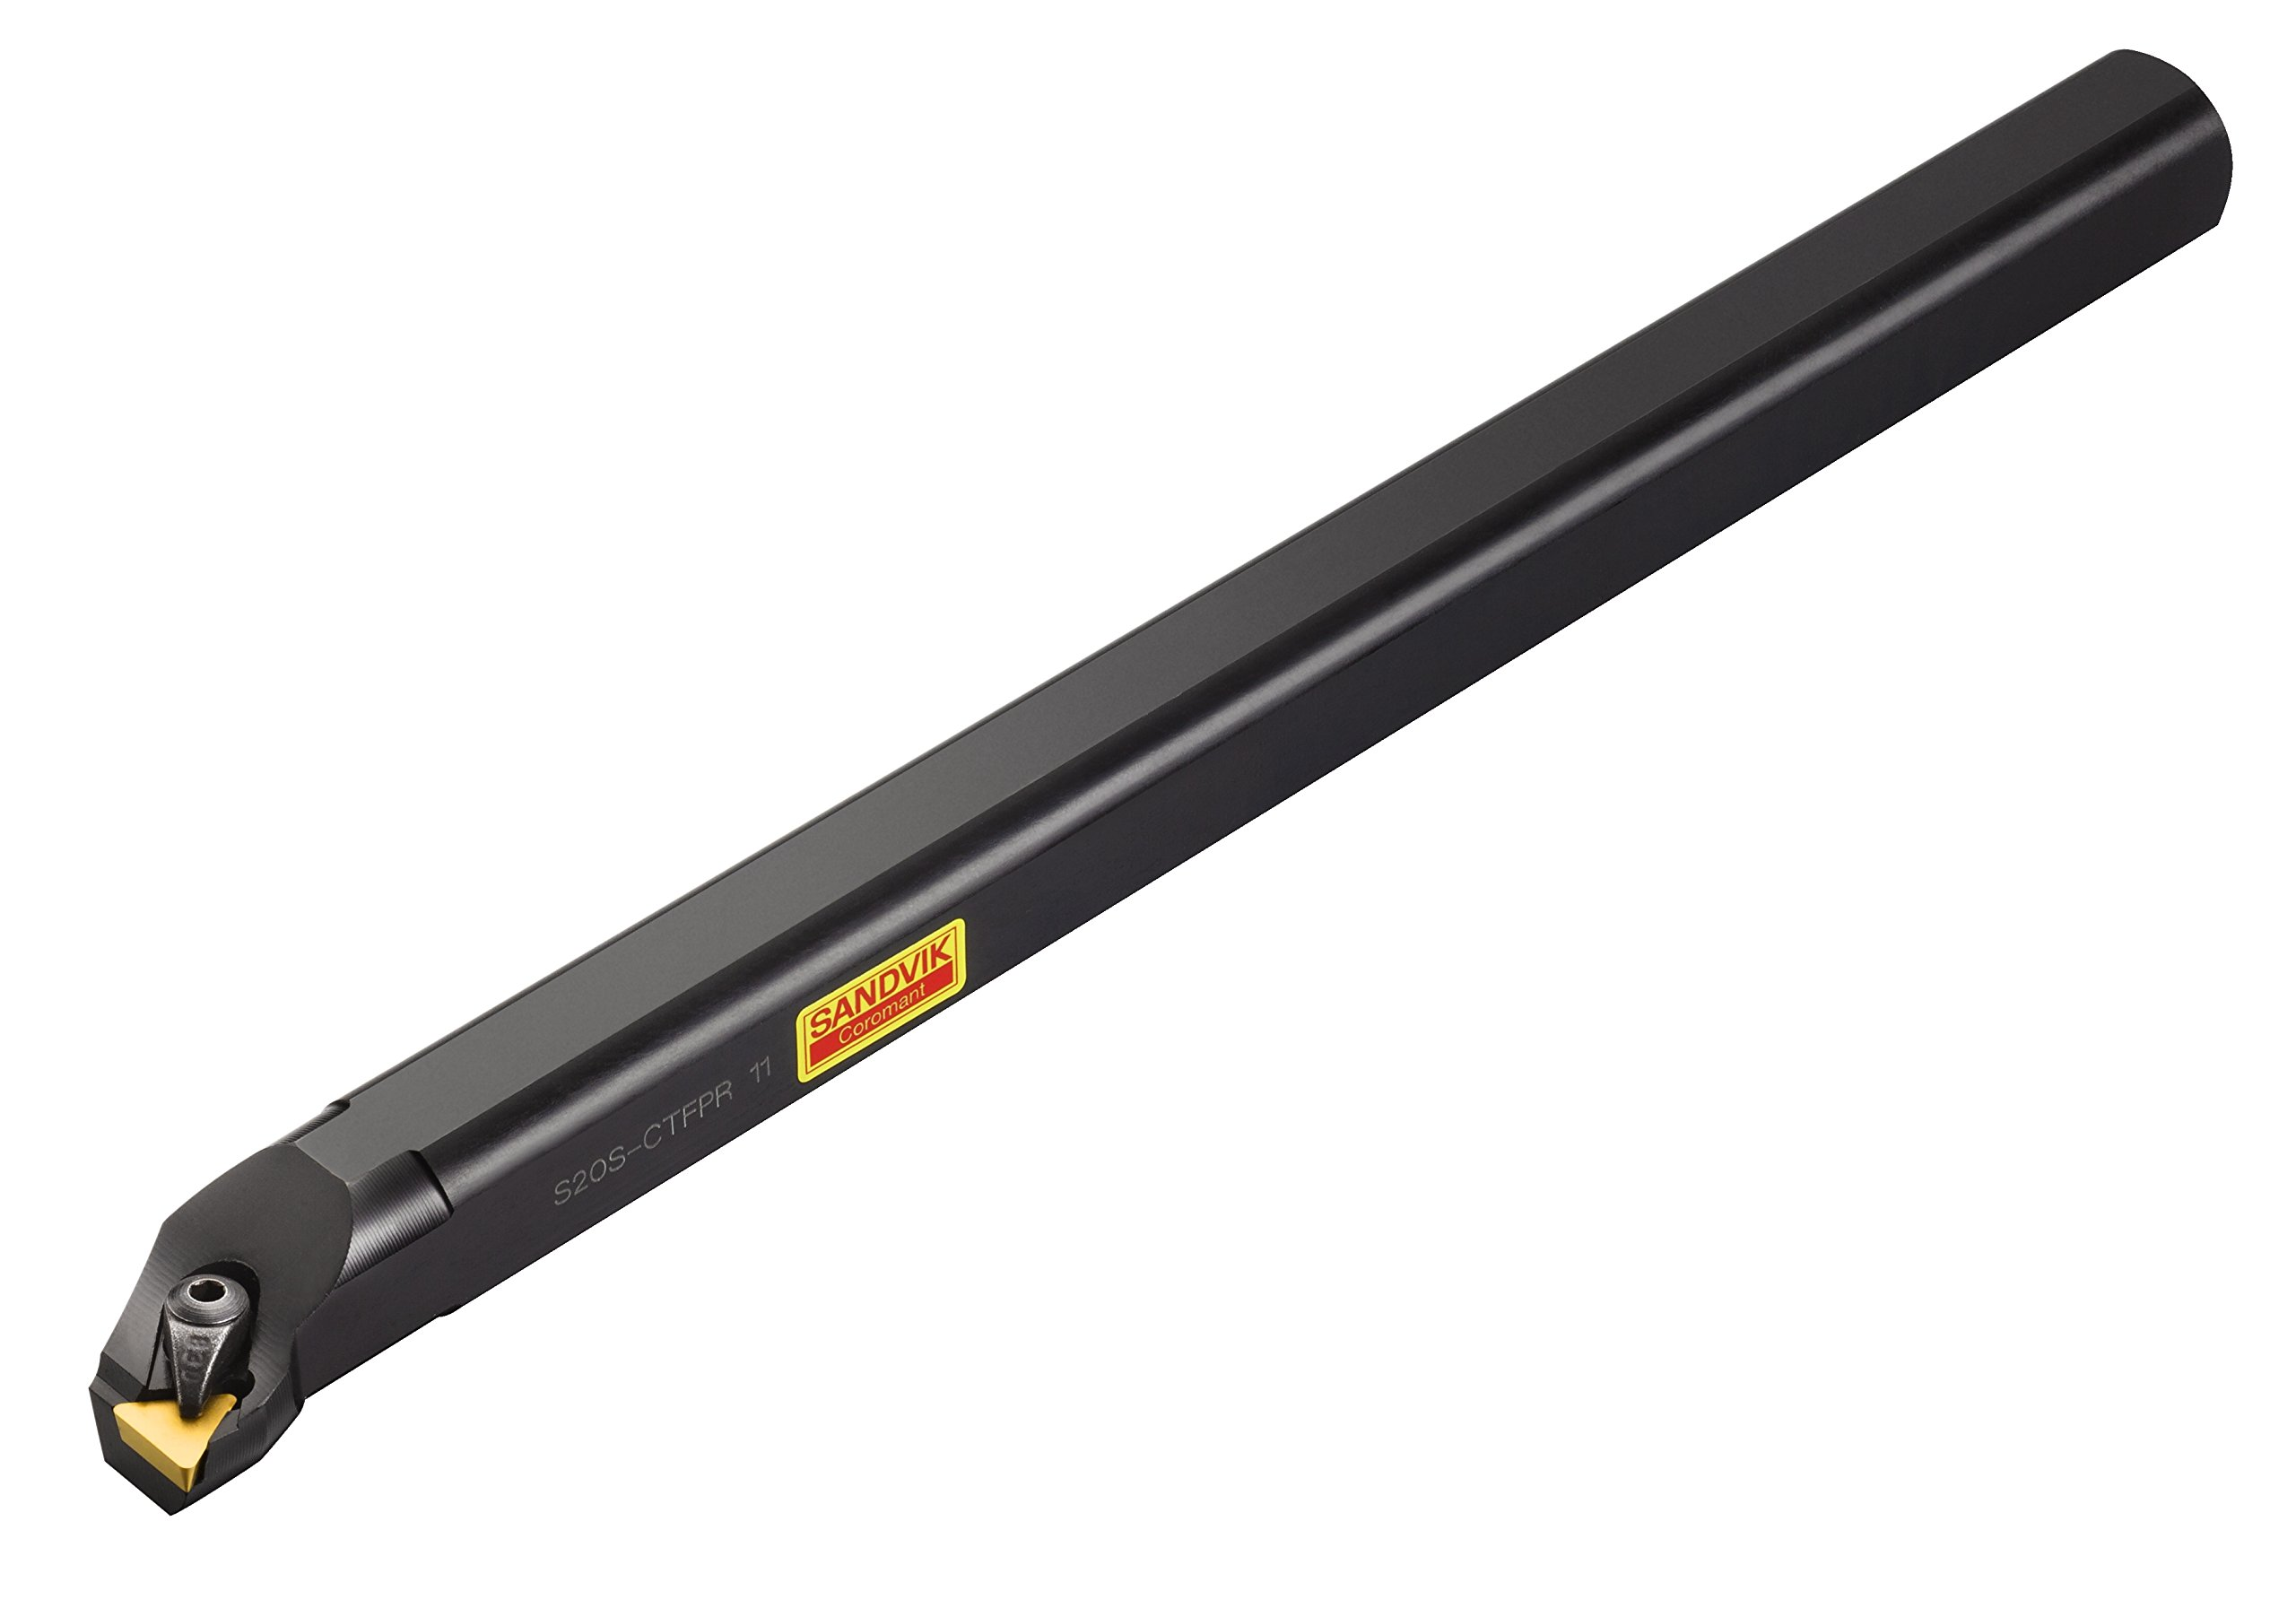 Sandvik Coromant S20S-CTFPR 11 Steel T-Max S Boring Bar for Turning 20 mm Shank Diameter, External Coolant Supply